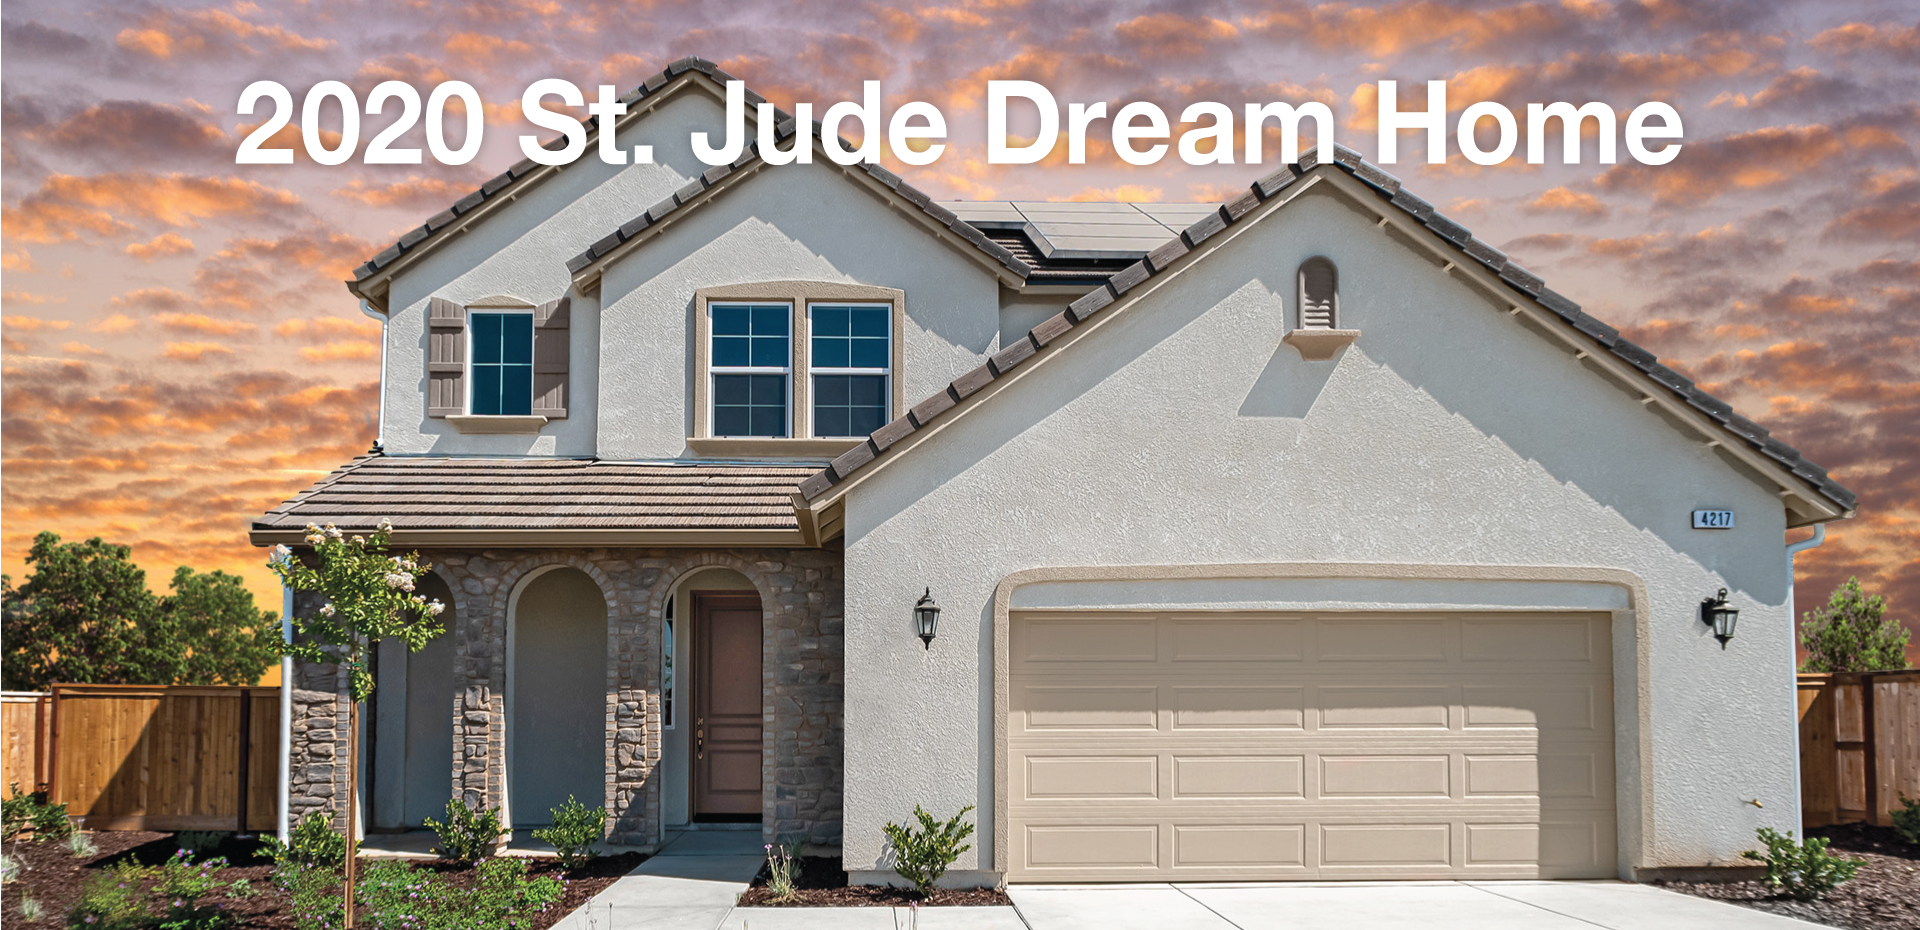 2020 St. Jude Dream Home